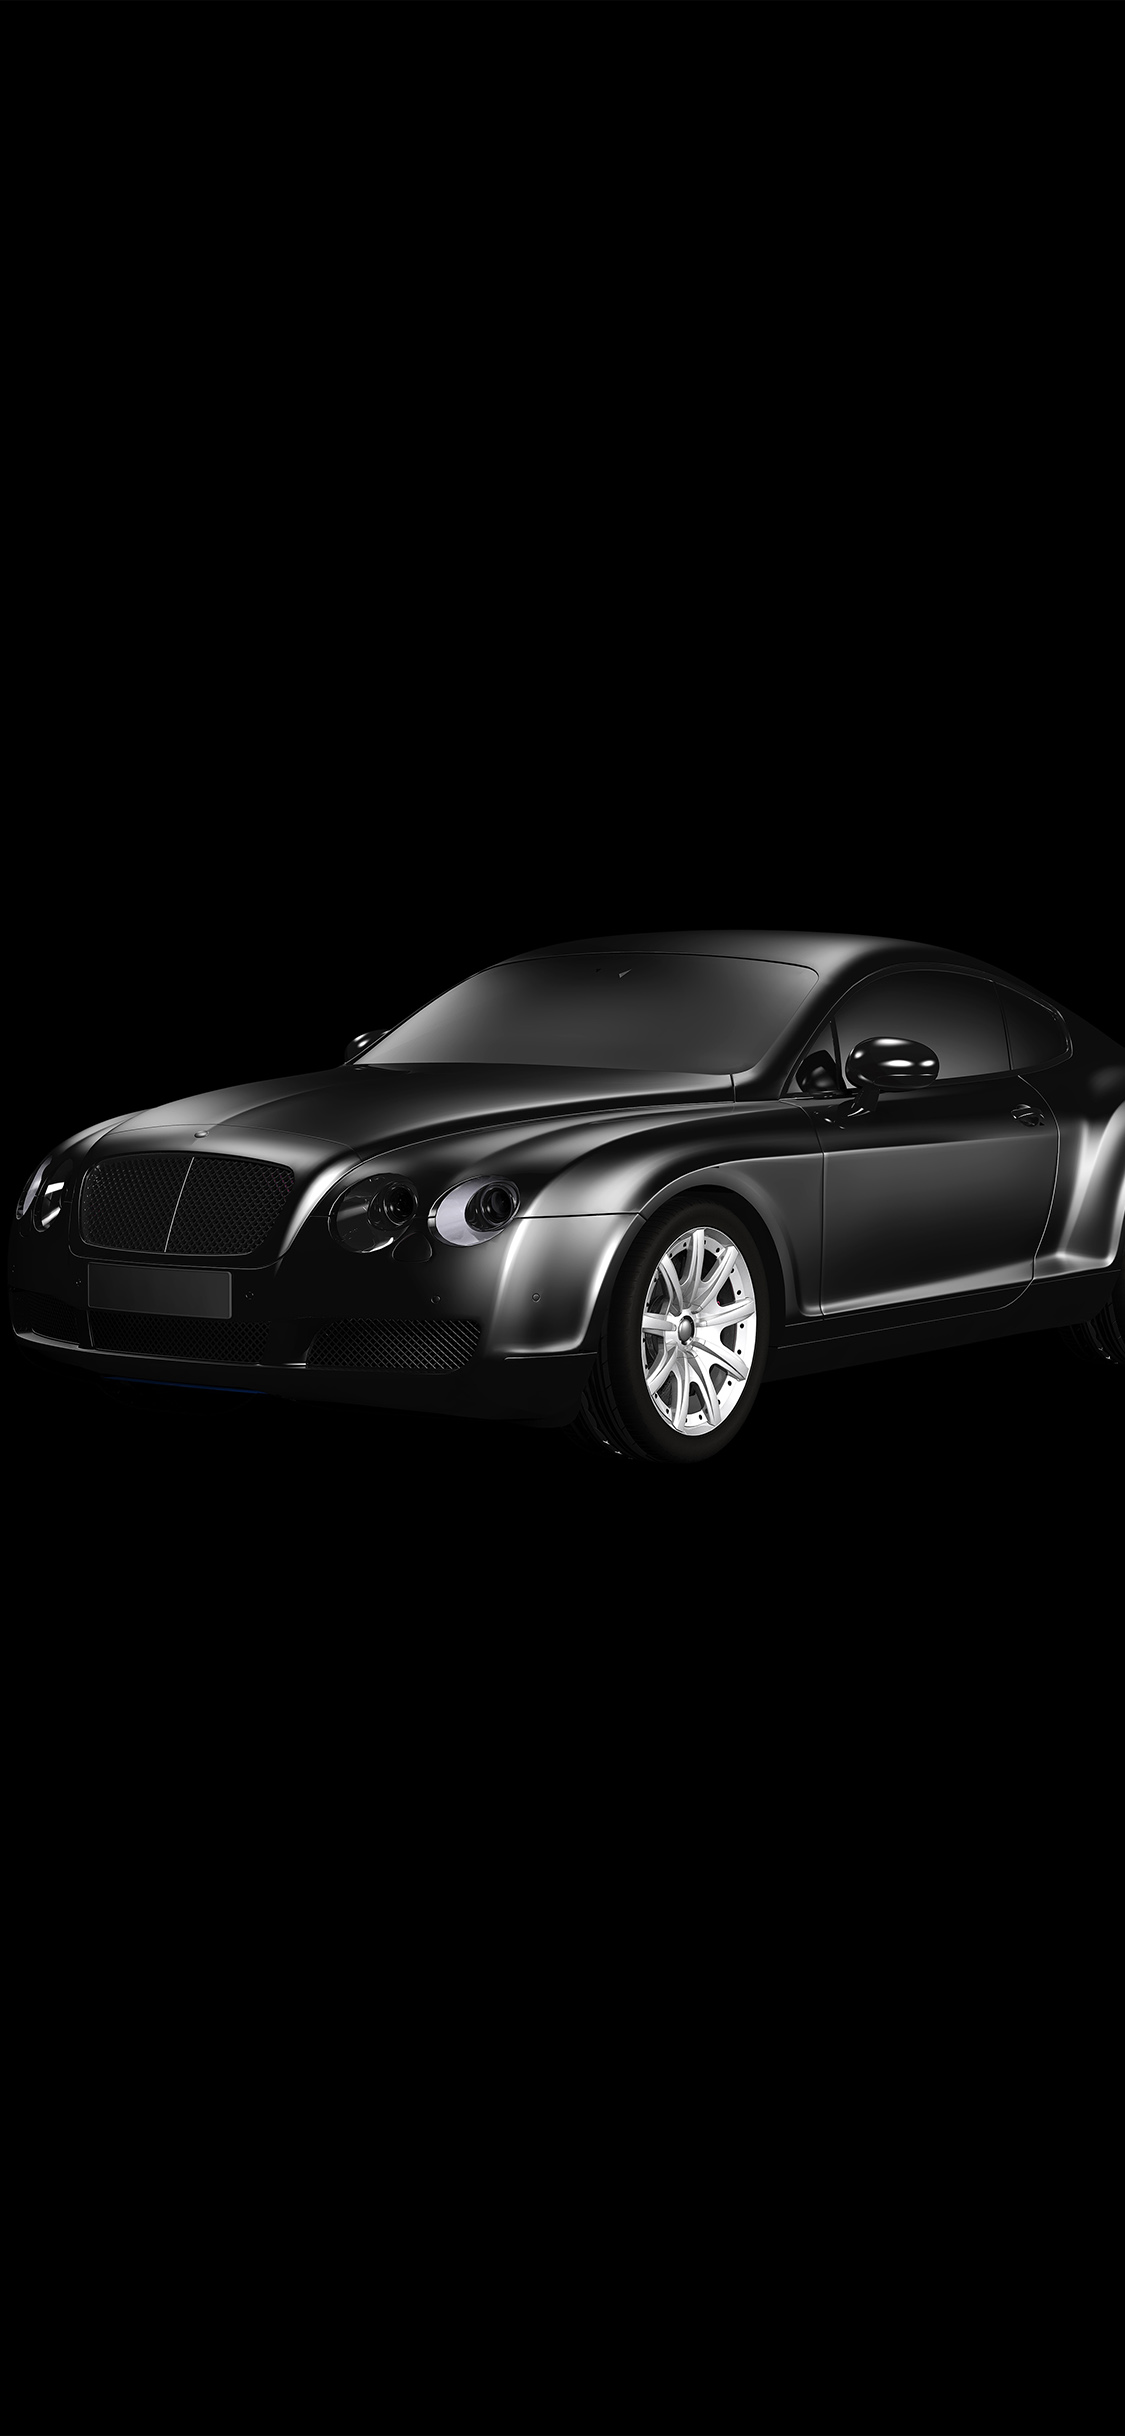 Choose from the iphone's default wallpaper selection or create your own vivid lock or home screen displays w. Iphone11papers Com Iphone11 Wallpaper At00 Car Bentley Dark Black Limousine Art Illustration